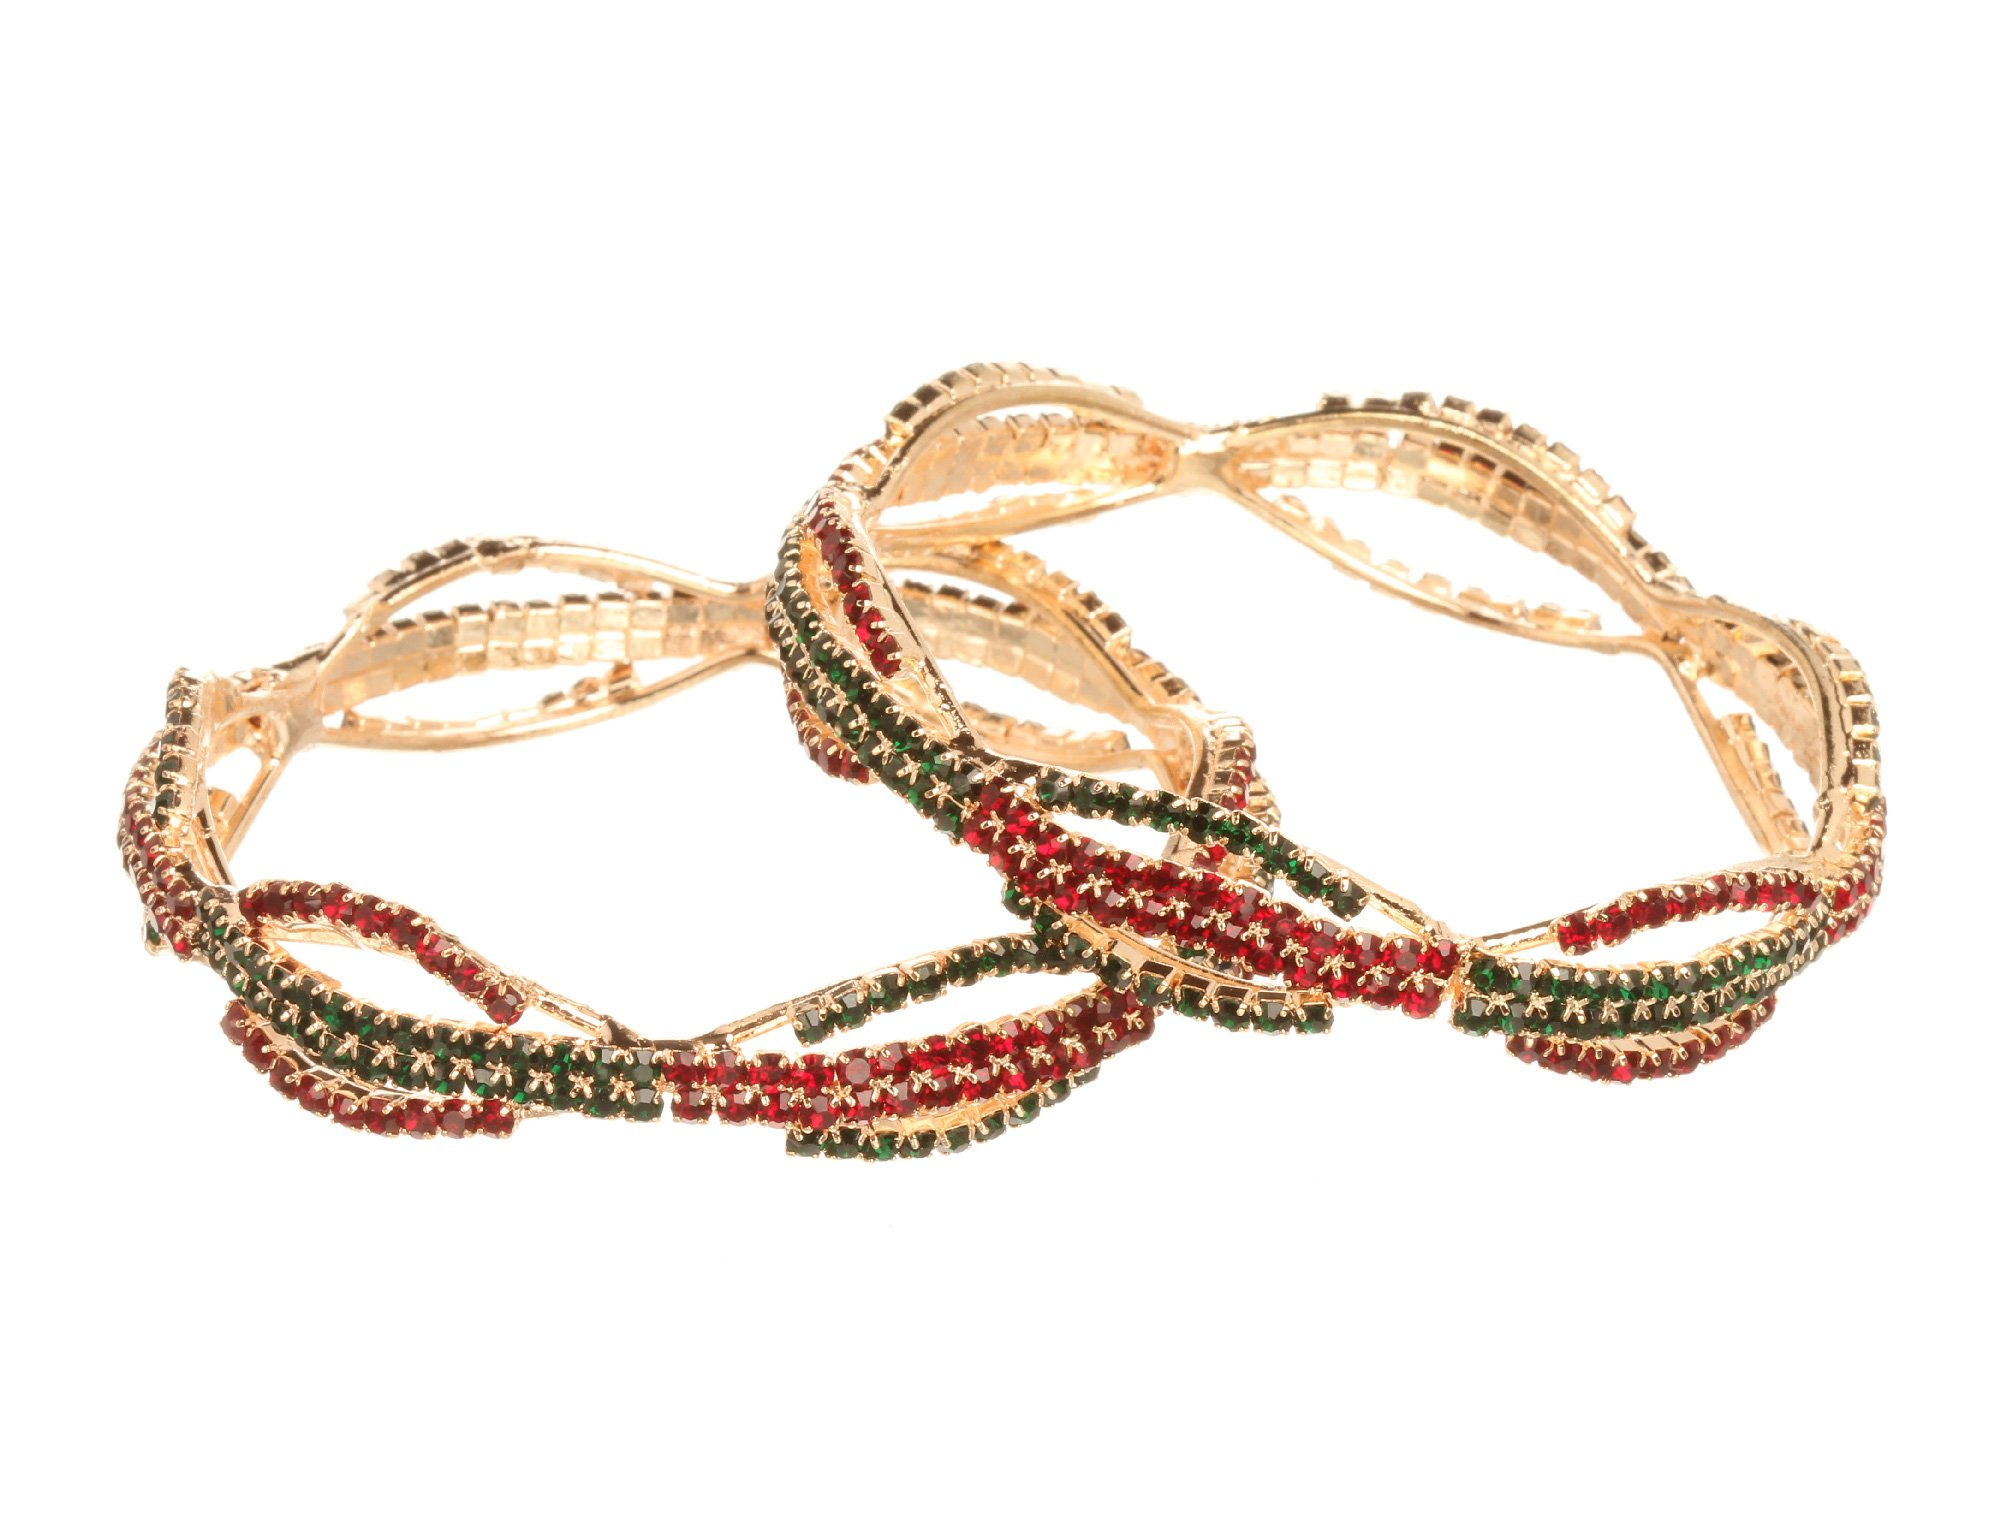 Bindhani Indian Traditional Bridal Wedding Bollywood Bracelets Bangle Set Jewelry for Women (2.8)